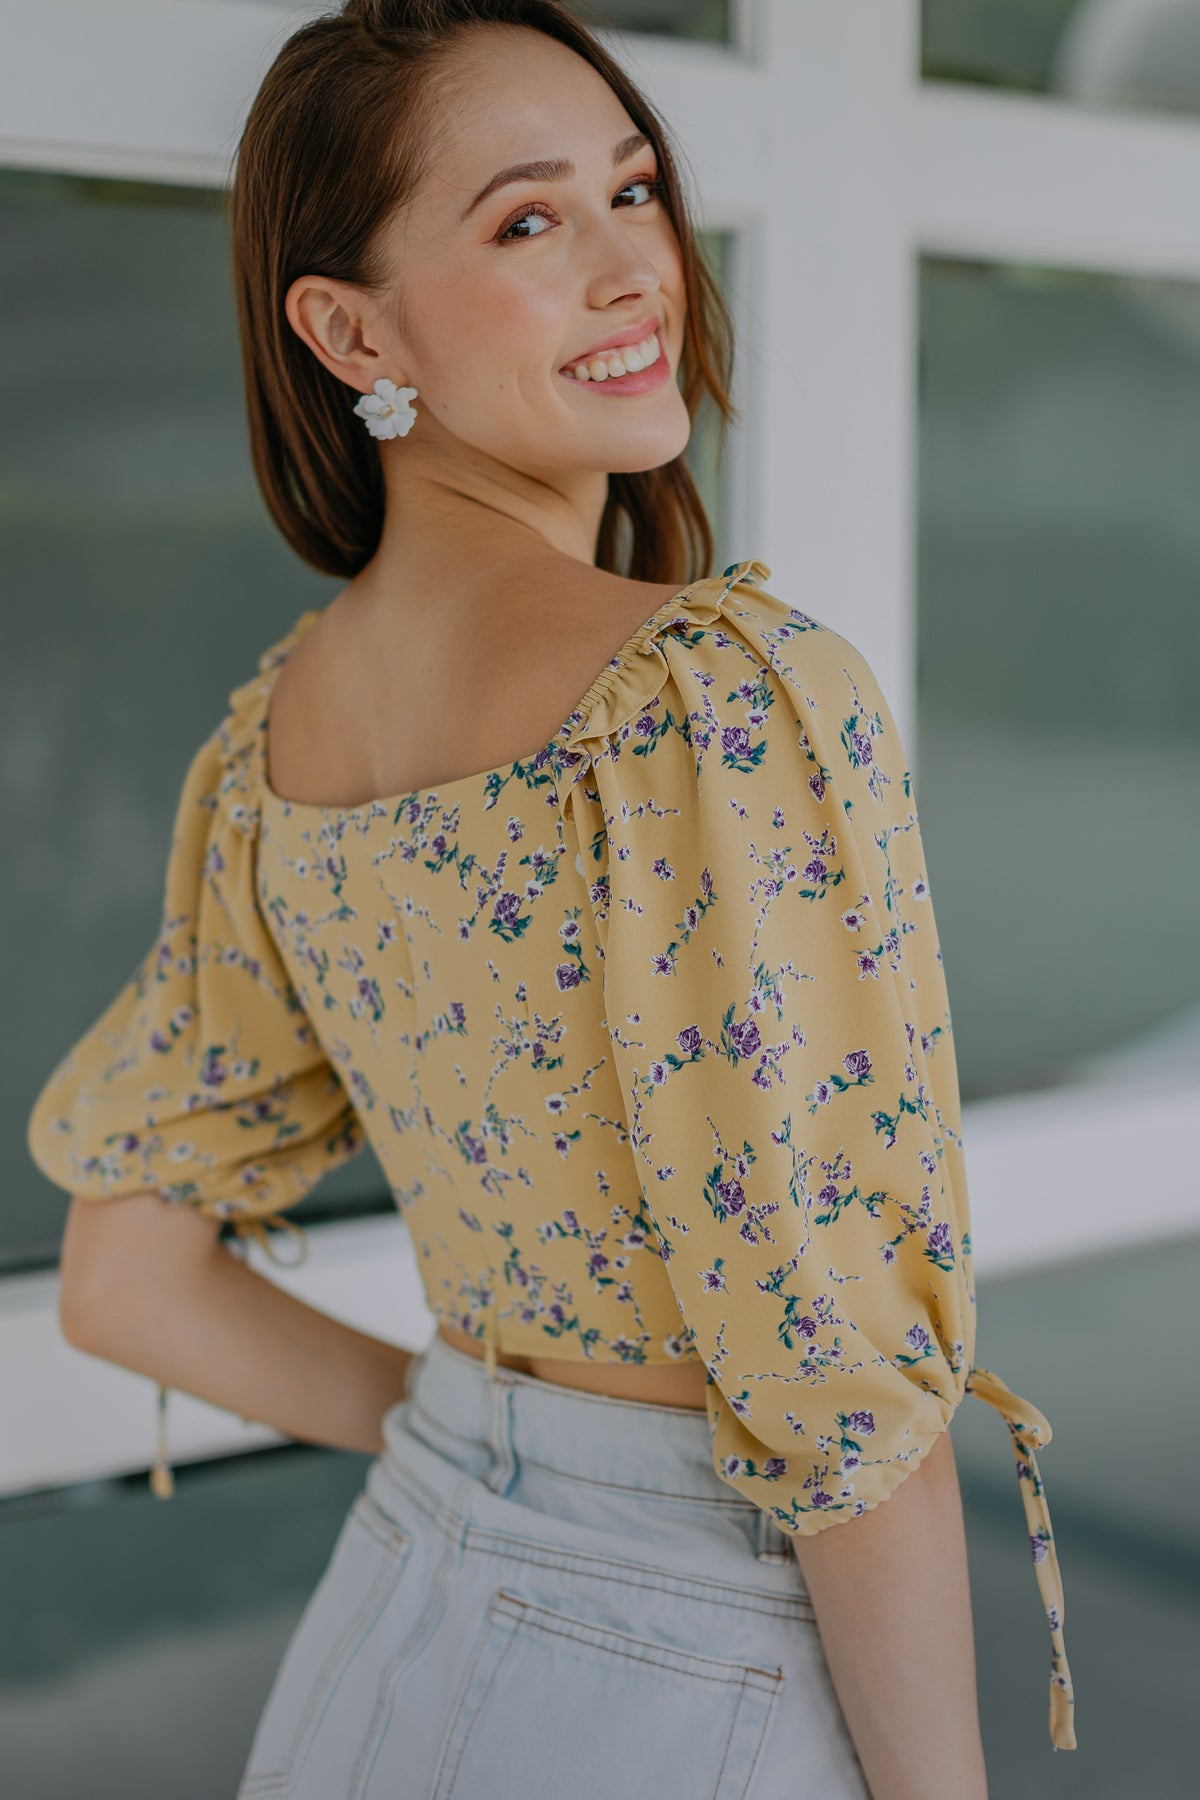 Bridget Floral Top in Yellow